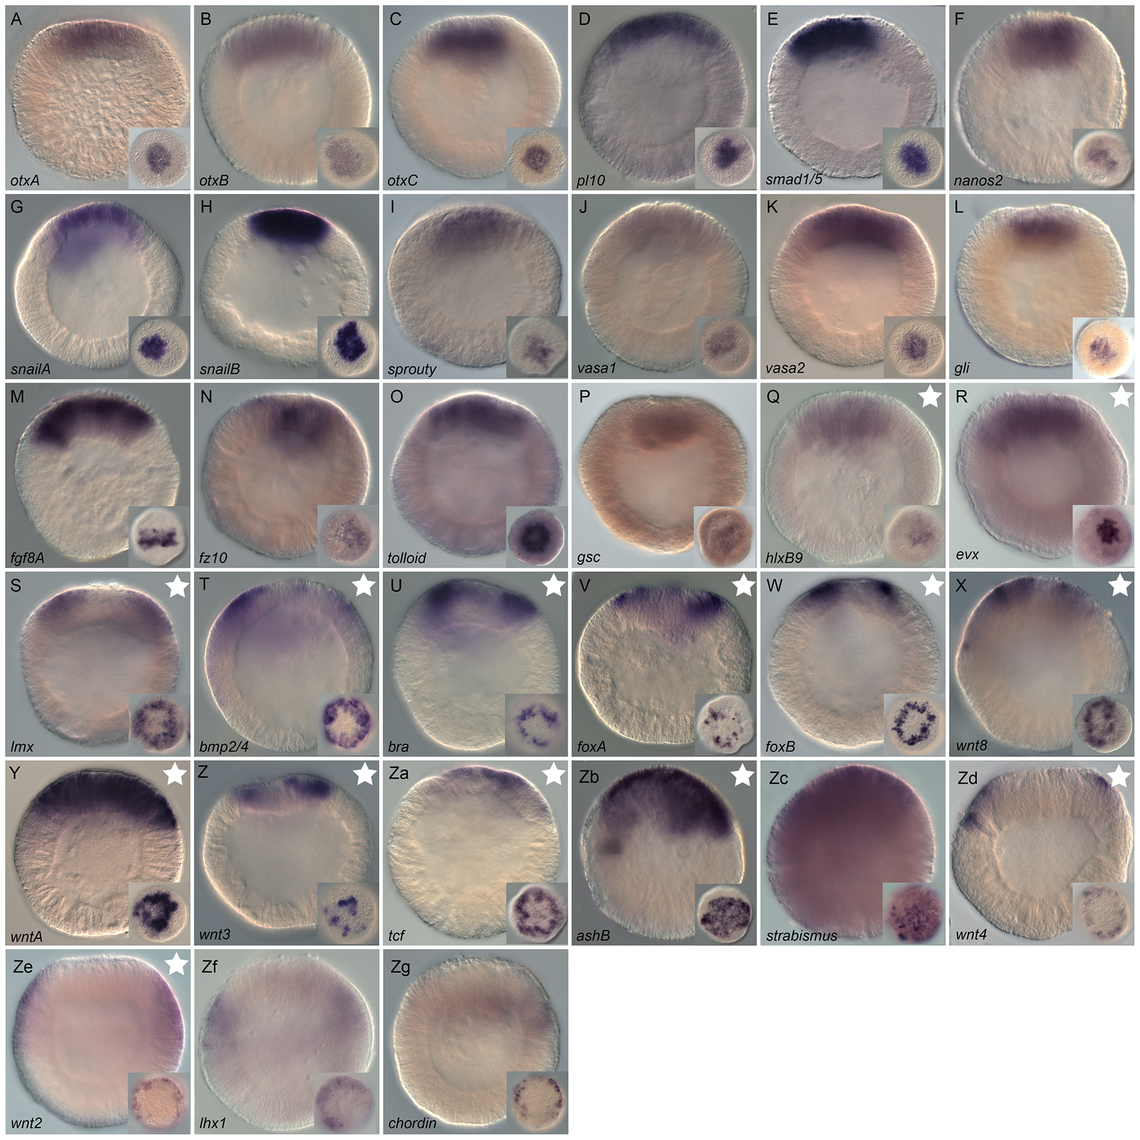 Gene expression re-analysis of previously published genes involved in endomesoderm development.